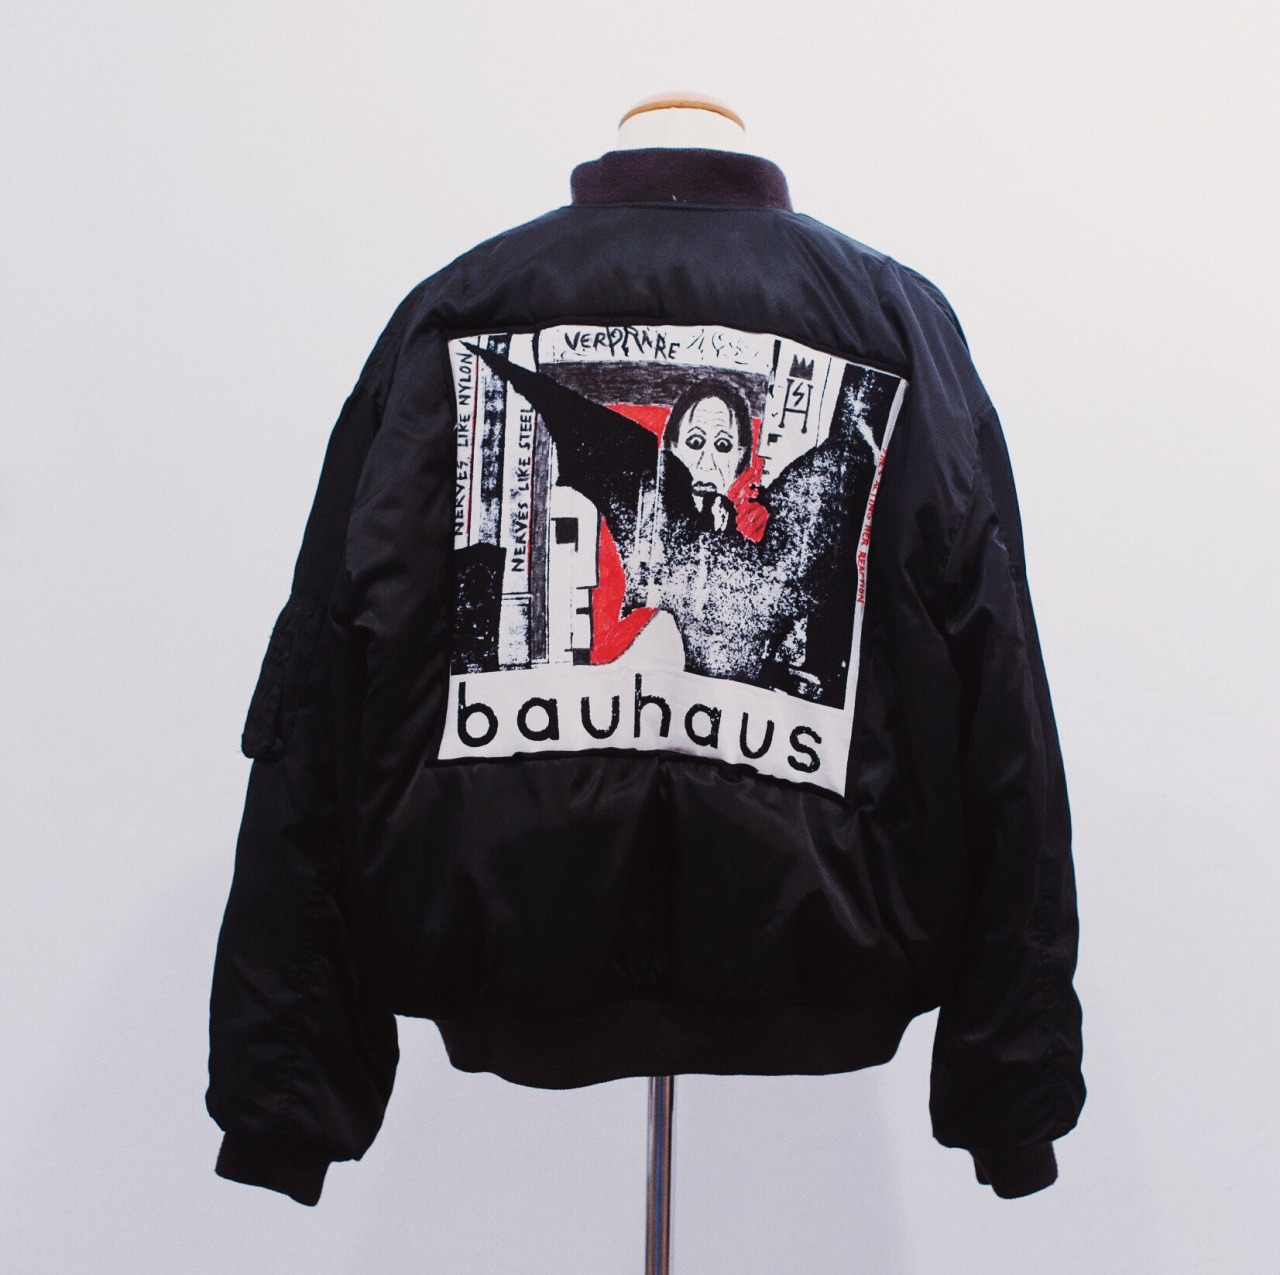 VERY RARE Bauhaus bomber jacket - by sven harambasic